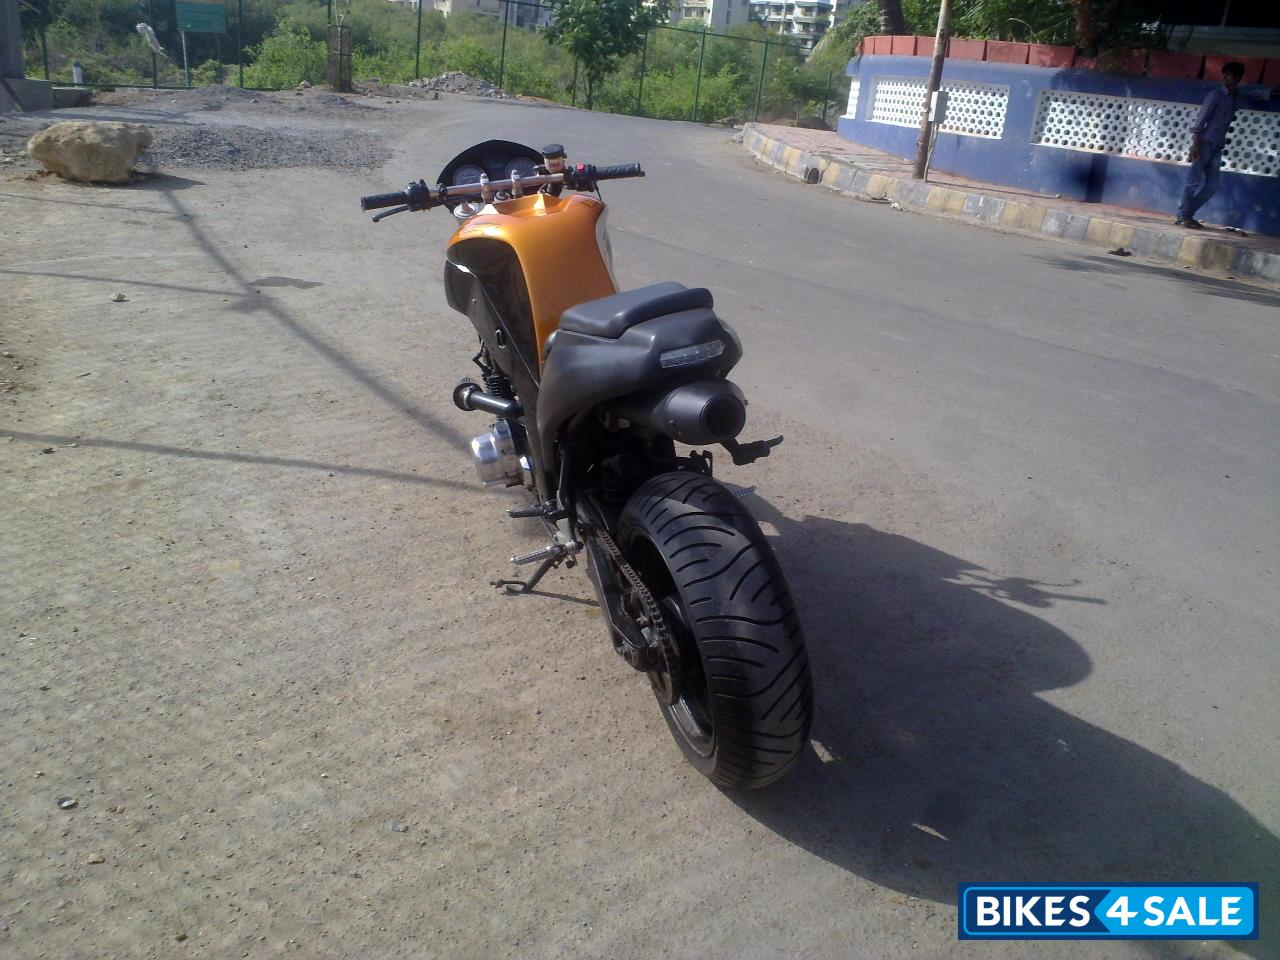 Used 1989 model Suzuki gs 550 e for sale in Mumbai  ID 80150